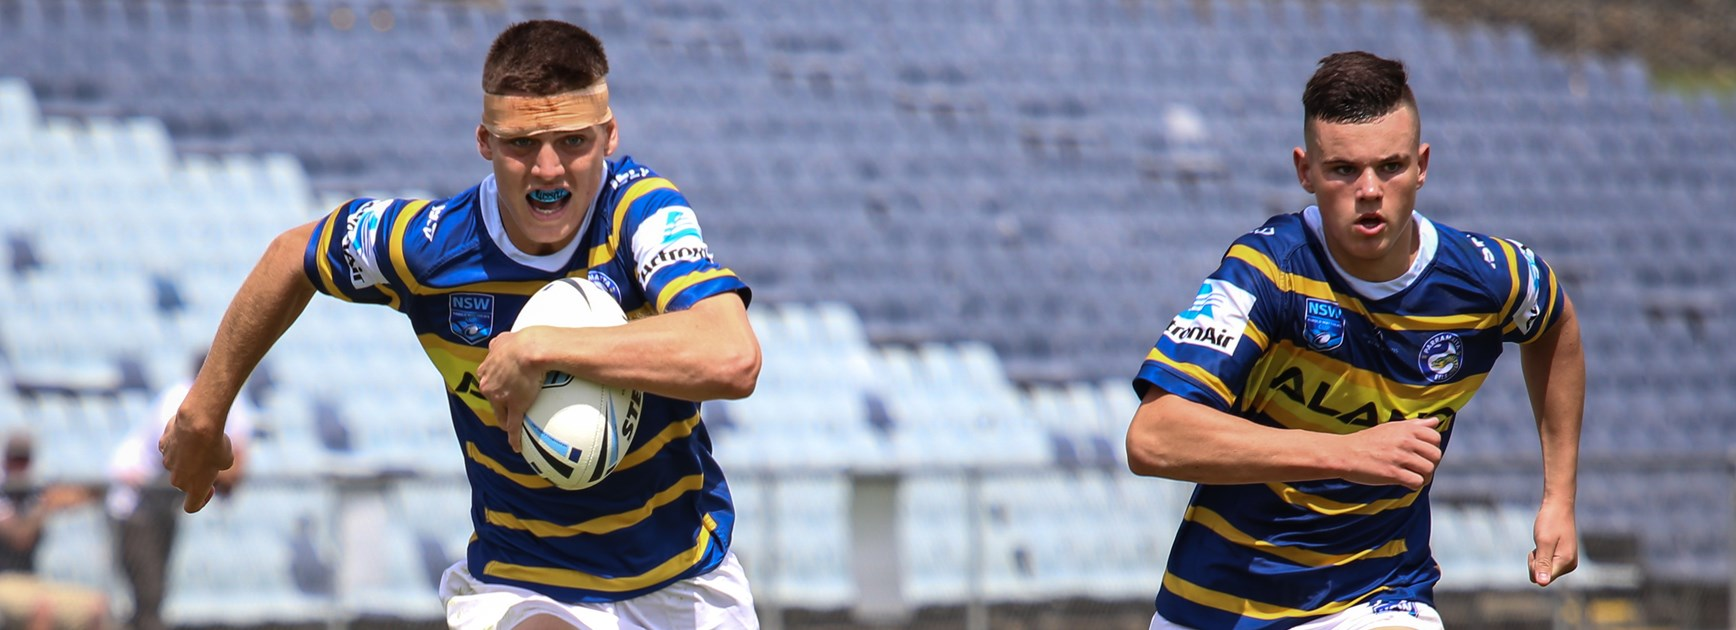 Eels Junior Rep Round Eight squads named